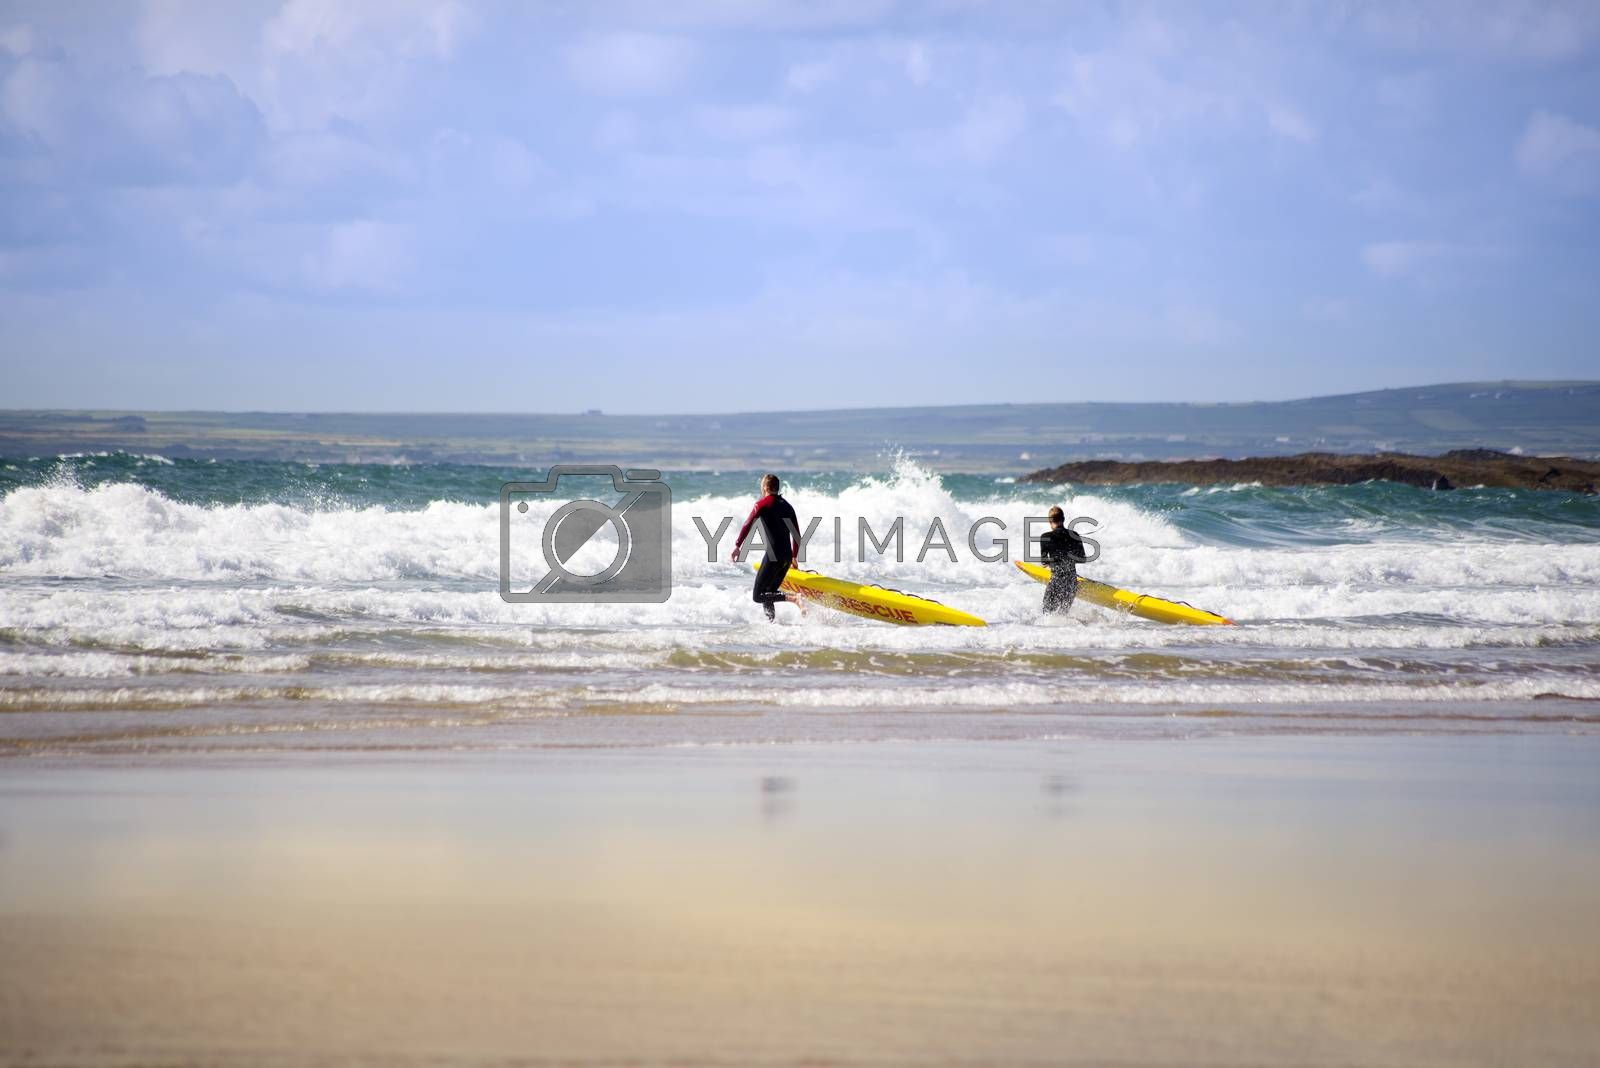 lifeguards training in the surf on ballybunion beach county kerry ireland